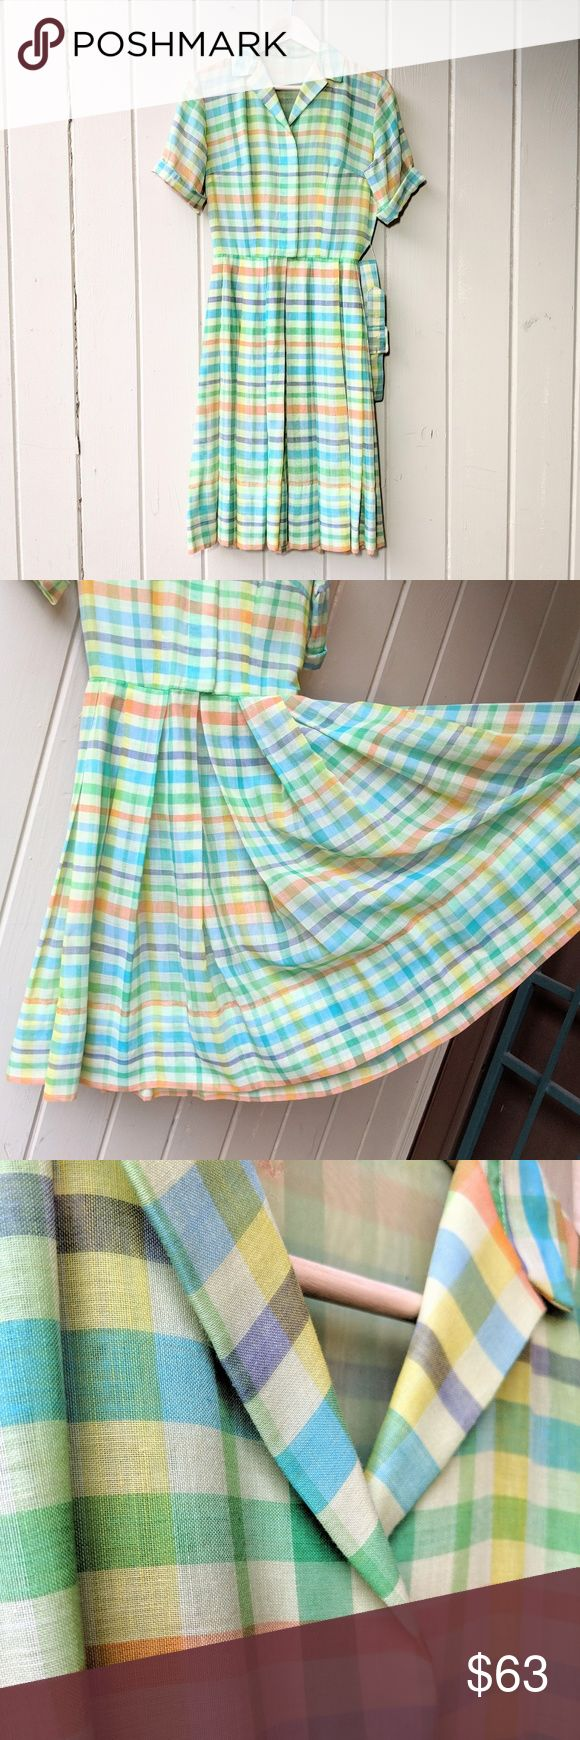 Vintage 1950s Spring Dress S Welcome spring with this vintage dream dress! '50s or early '60s in yellow, green, orange, blue, purple plaid. Plenty of room in the pleated skirt to poof it out with a crinoline. Original belt included! Hidden buttons, hook closure at waist. Torso has a solid yellow sheer lining; skirt is unlined. Dress is sheer, so you'll need a slip. 1 belt loop is detached at the top; a few holes in the sheer lining at the upper back (see photo - not noticeable when worn). B…